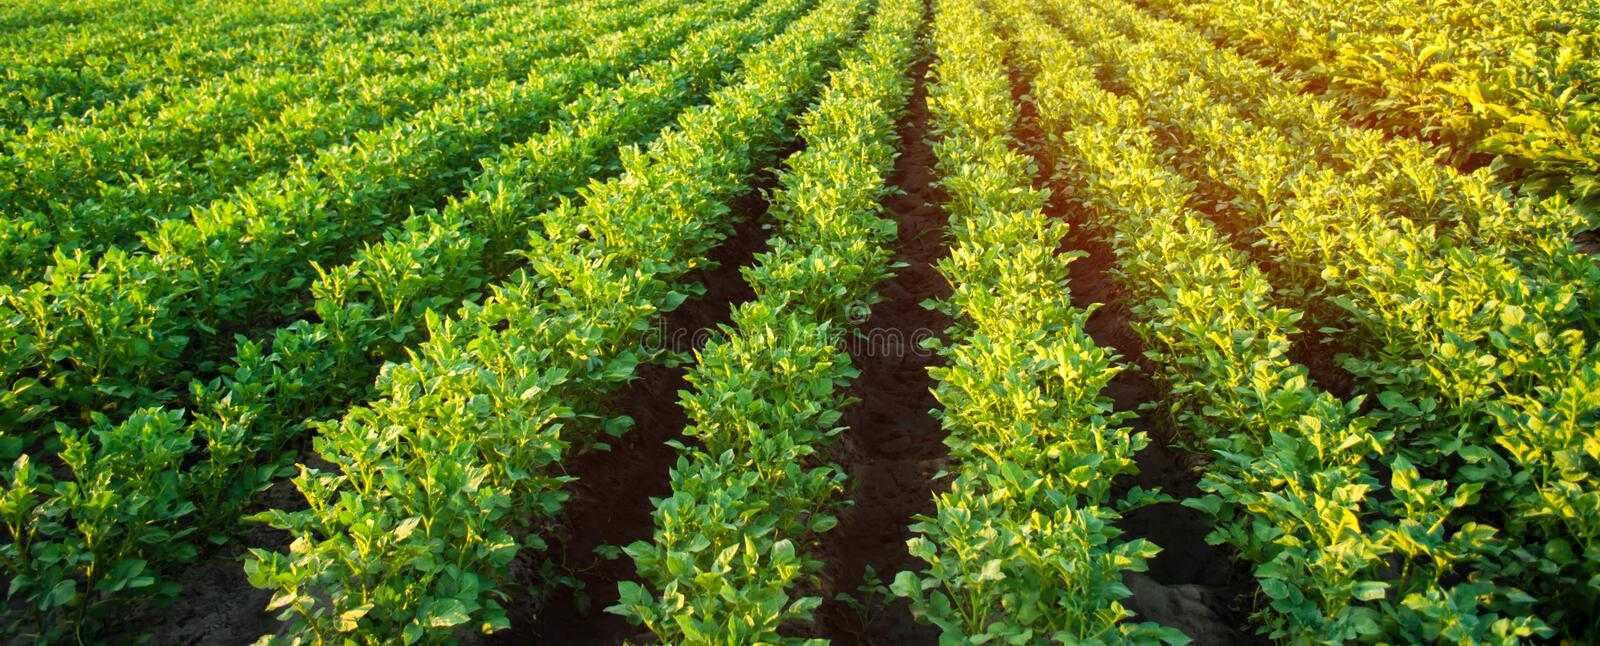 Potato plantations grow in the field. vegetable rows. farming, agriculture. Landscape with agricultural land. crops. Banner.  royalty free stock images